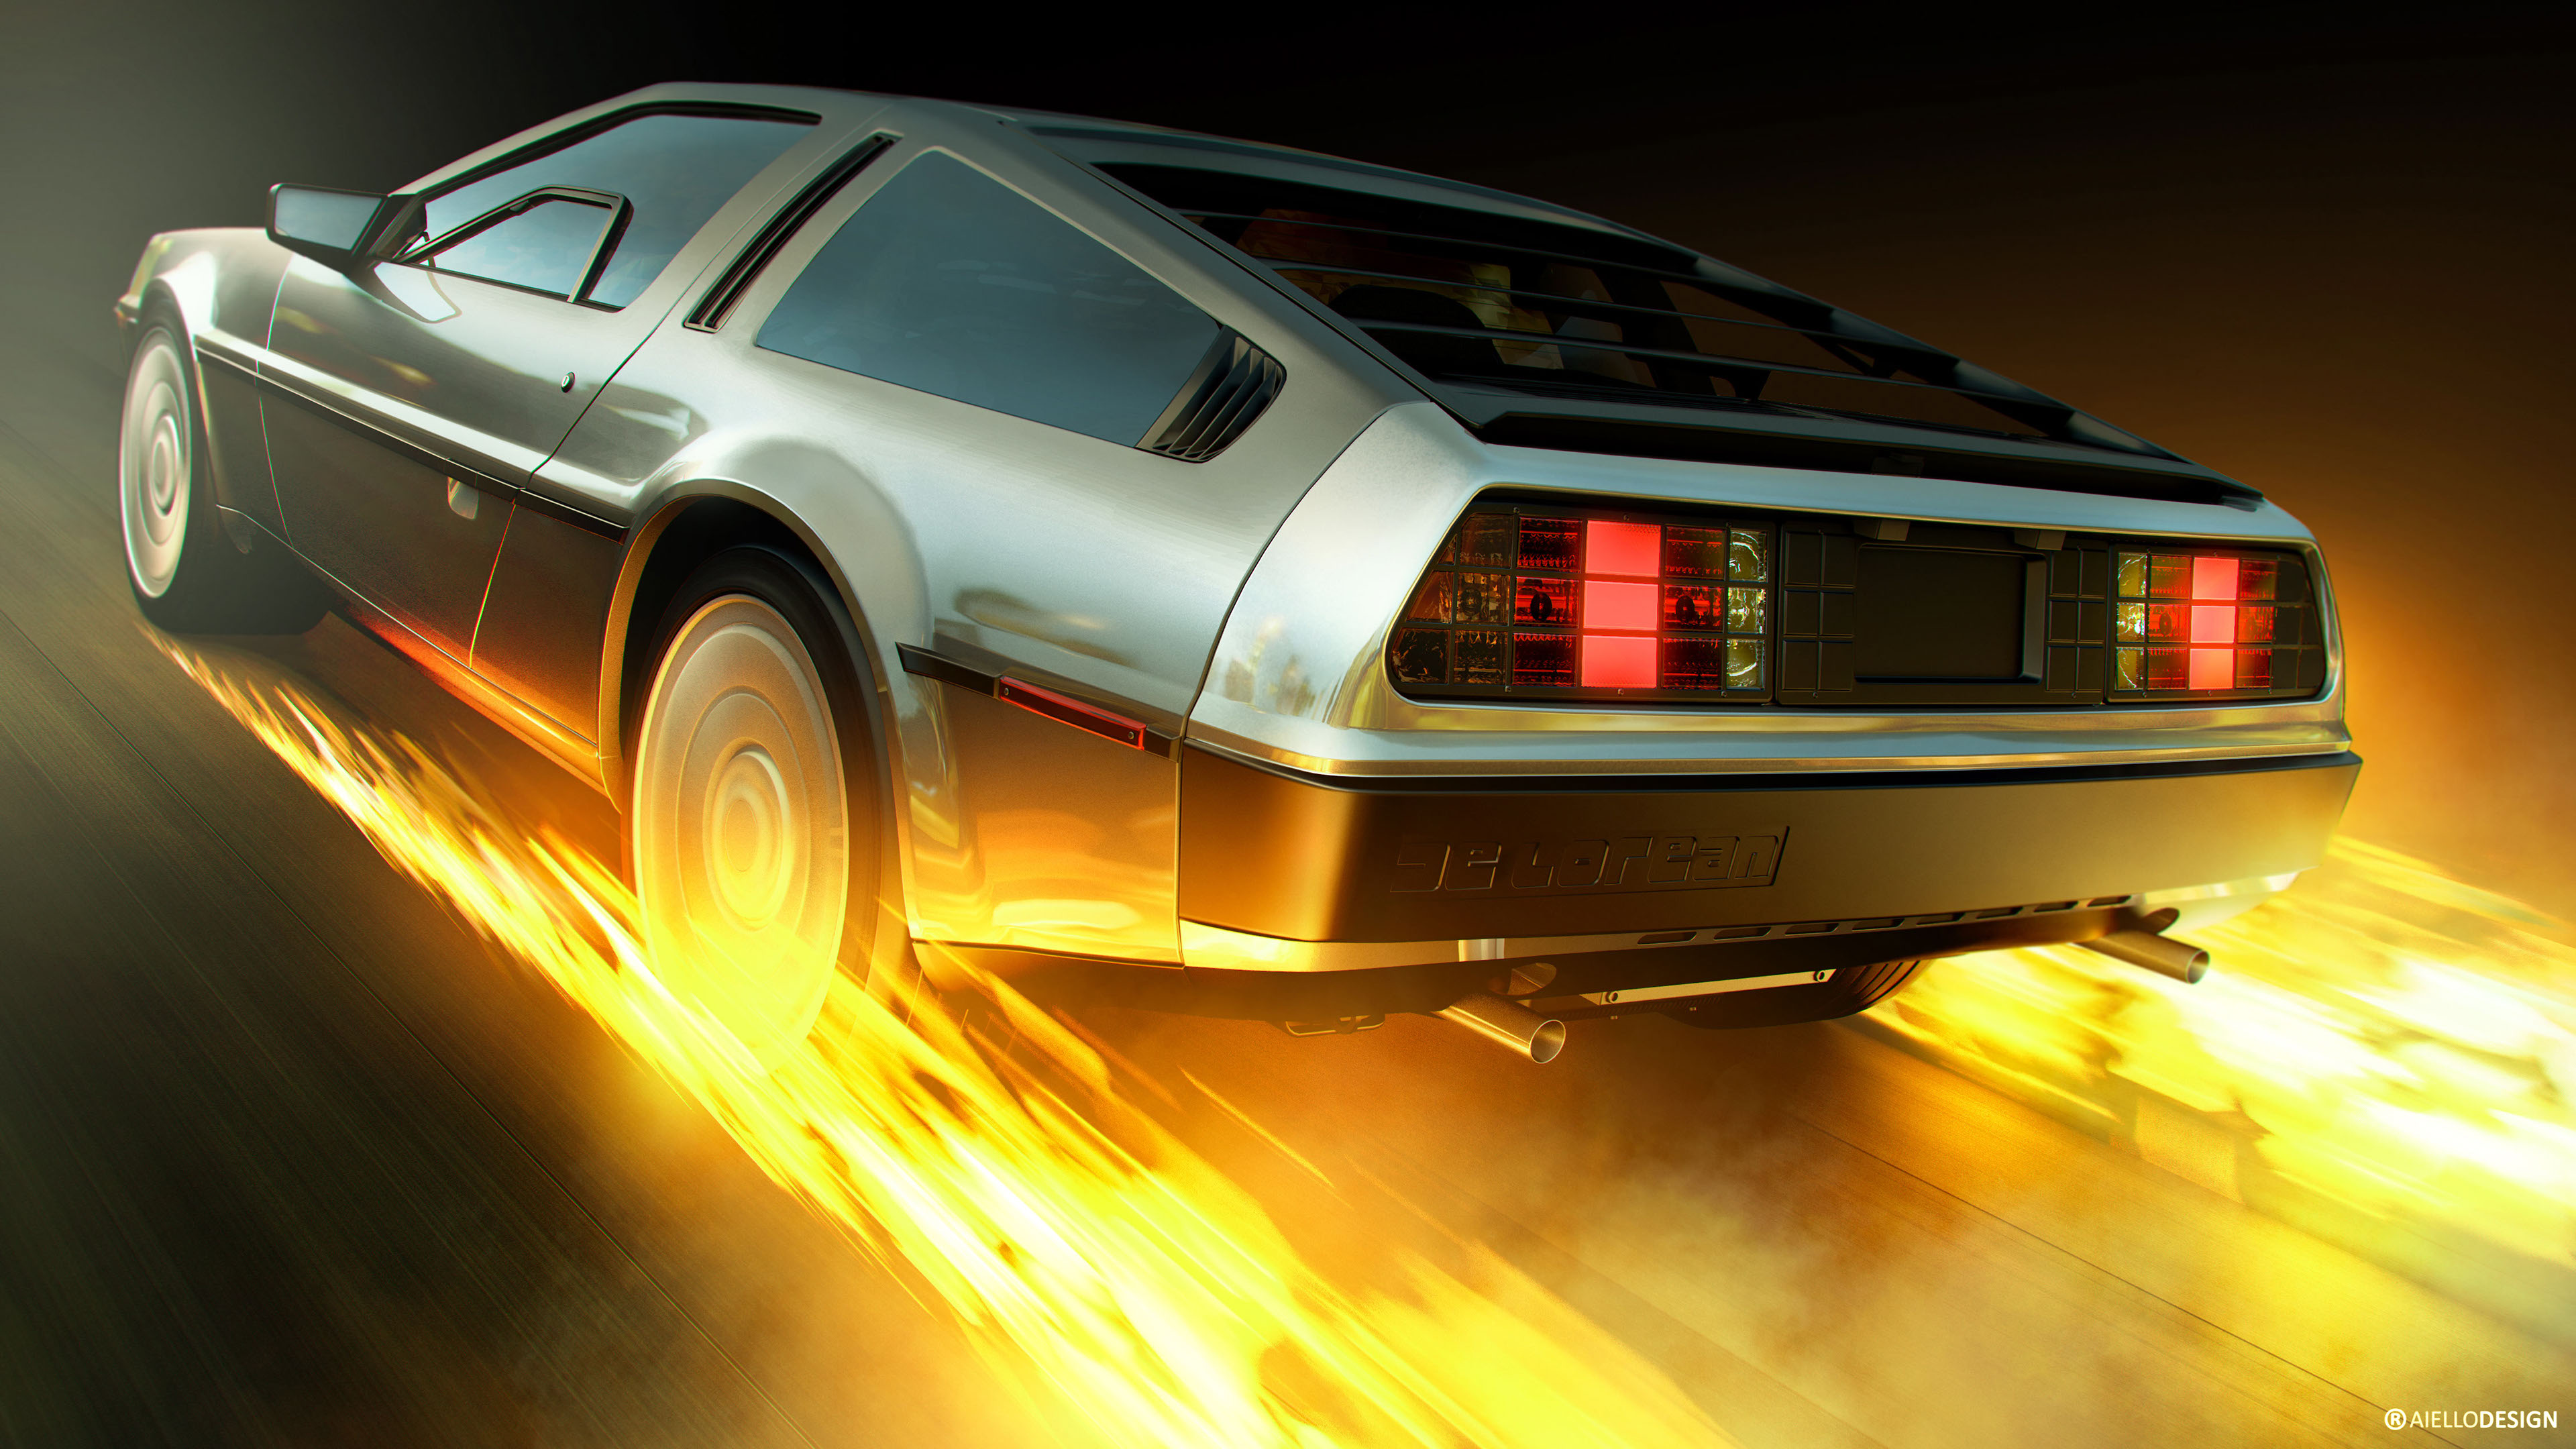 DeLorean time machine Artwork 4K Wallpapers